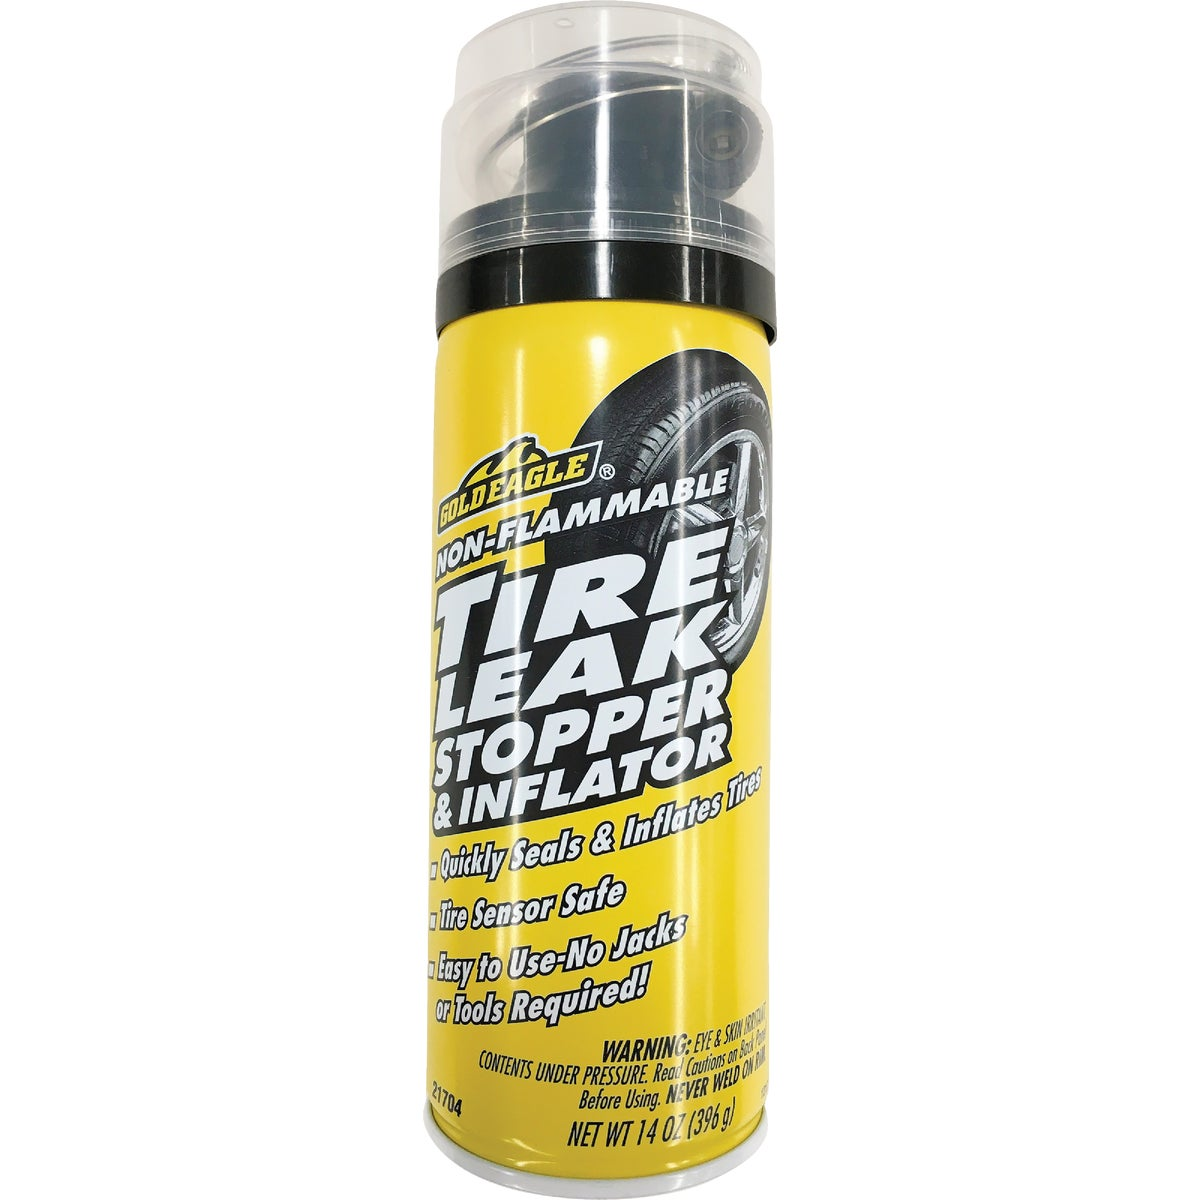 TIRE LEAK STOP/INFLATOR - 21703 by Gold Eagle Mfg